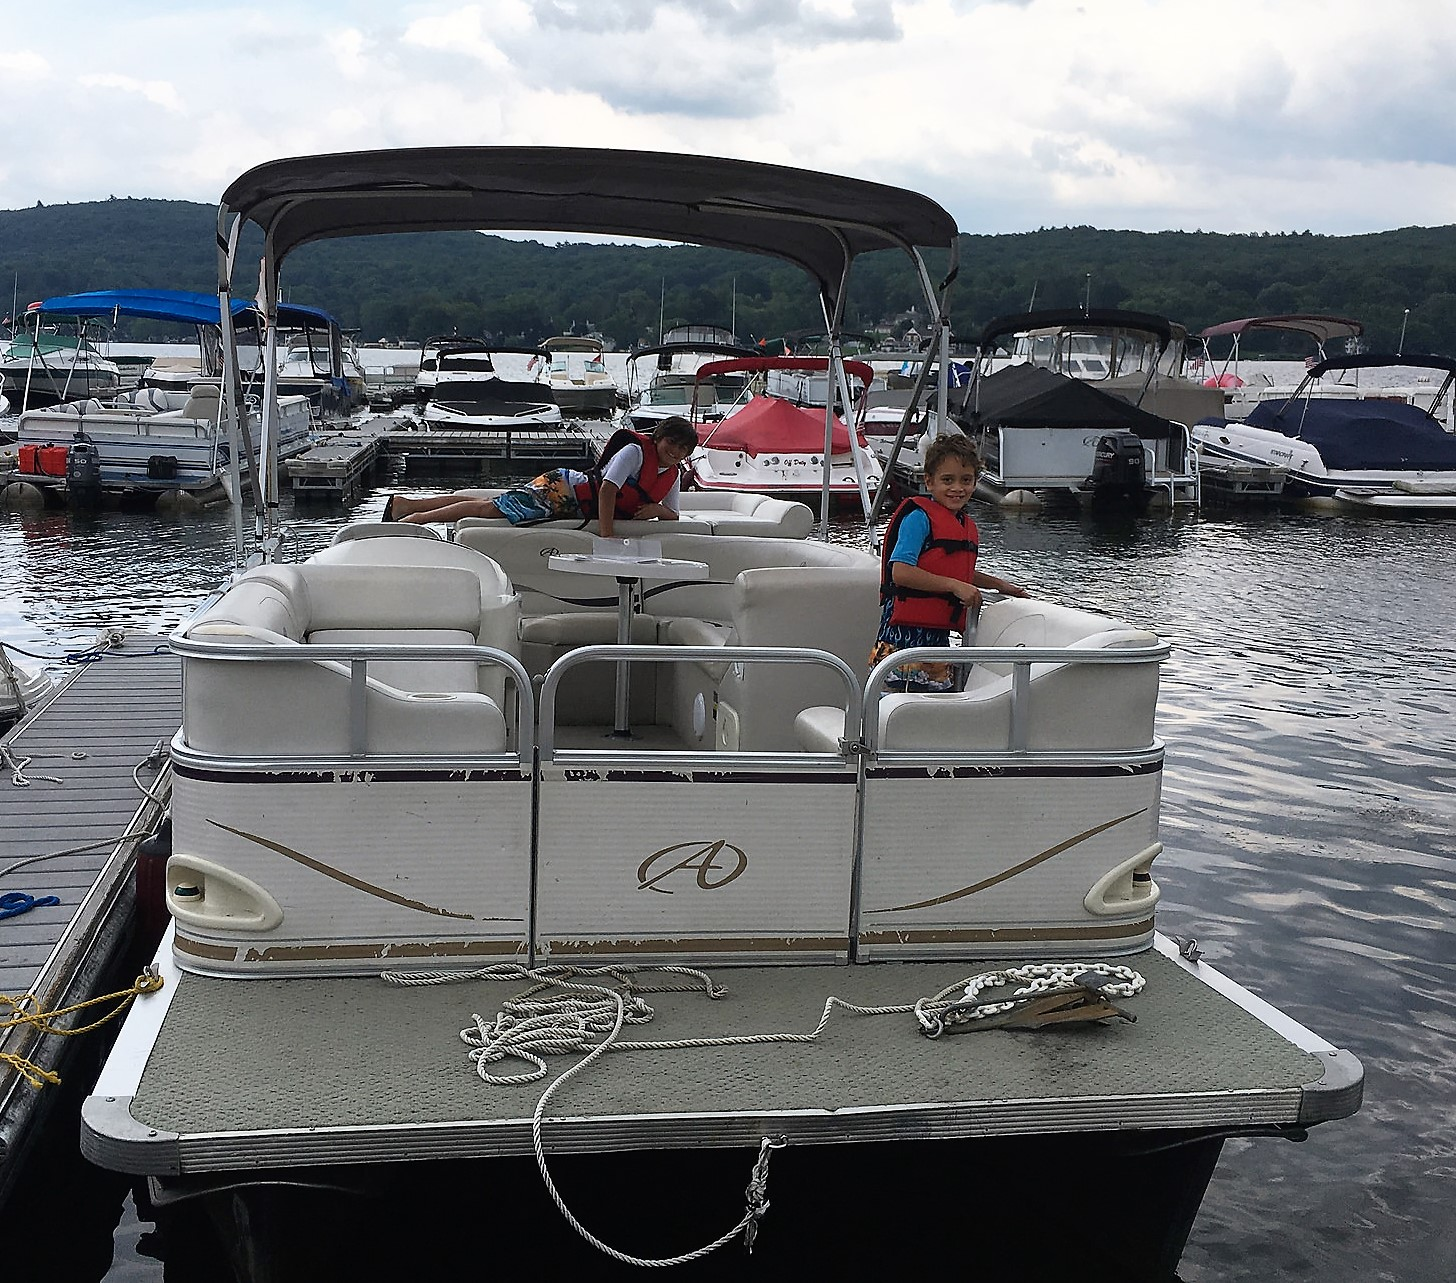 Family Reunion on Greenwood Lake - renting a pontoon